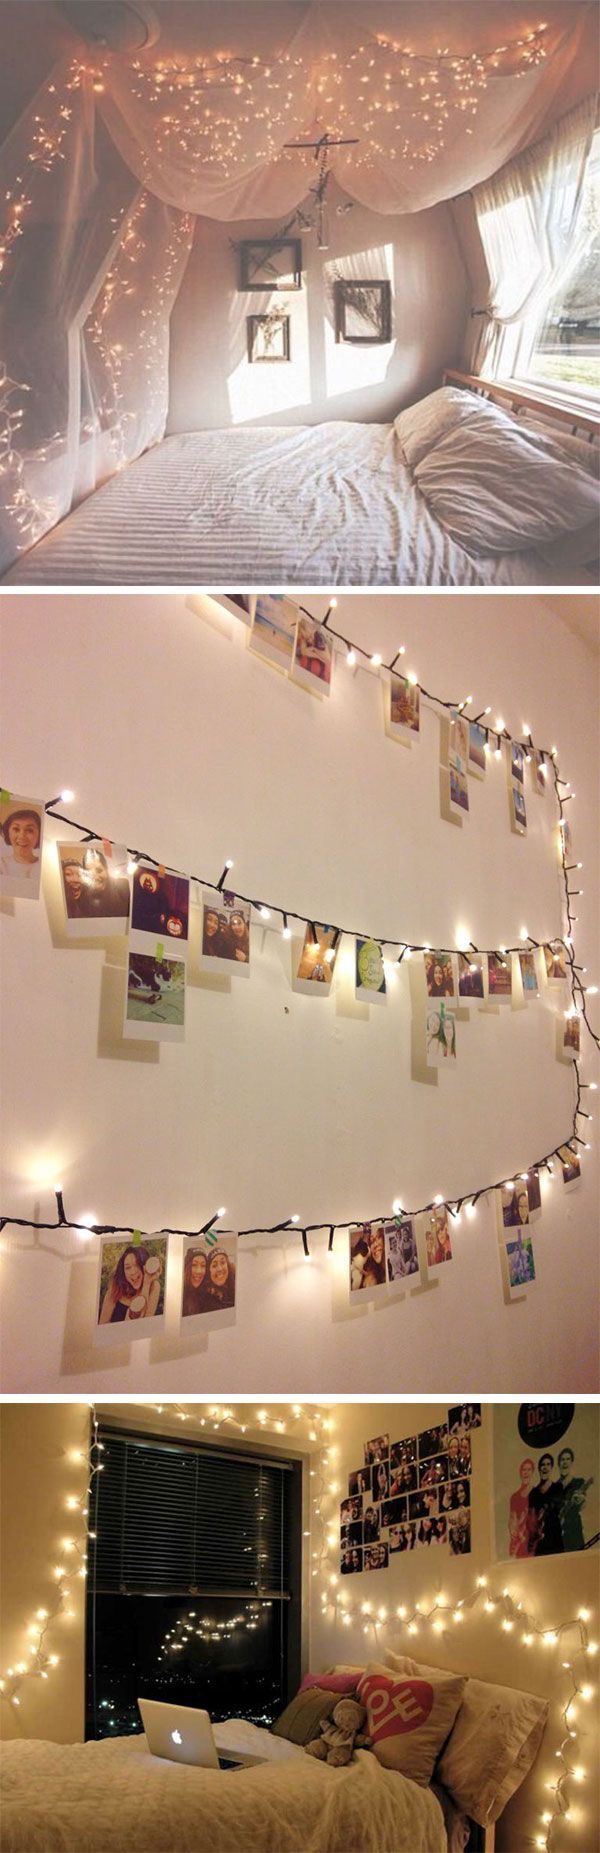 Bedroom design ideas for teenage girls tumblr - 13 Ways To Use Fairy Lights To Make Your Home Look Magical Room Decor Diy Lightsdiy Home Decor For Teens Tumblr Girls